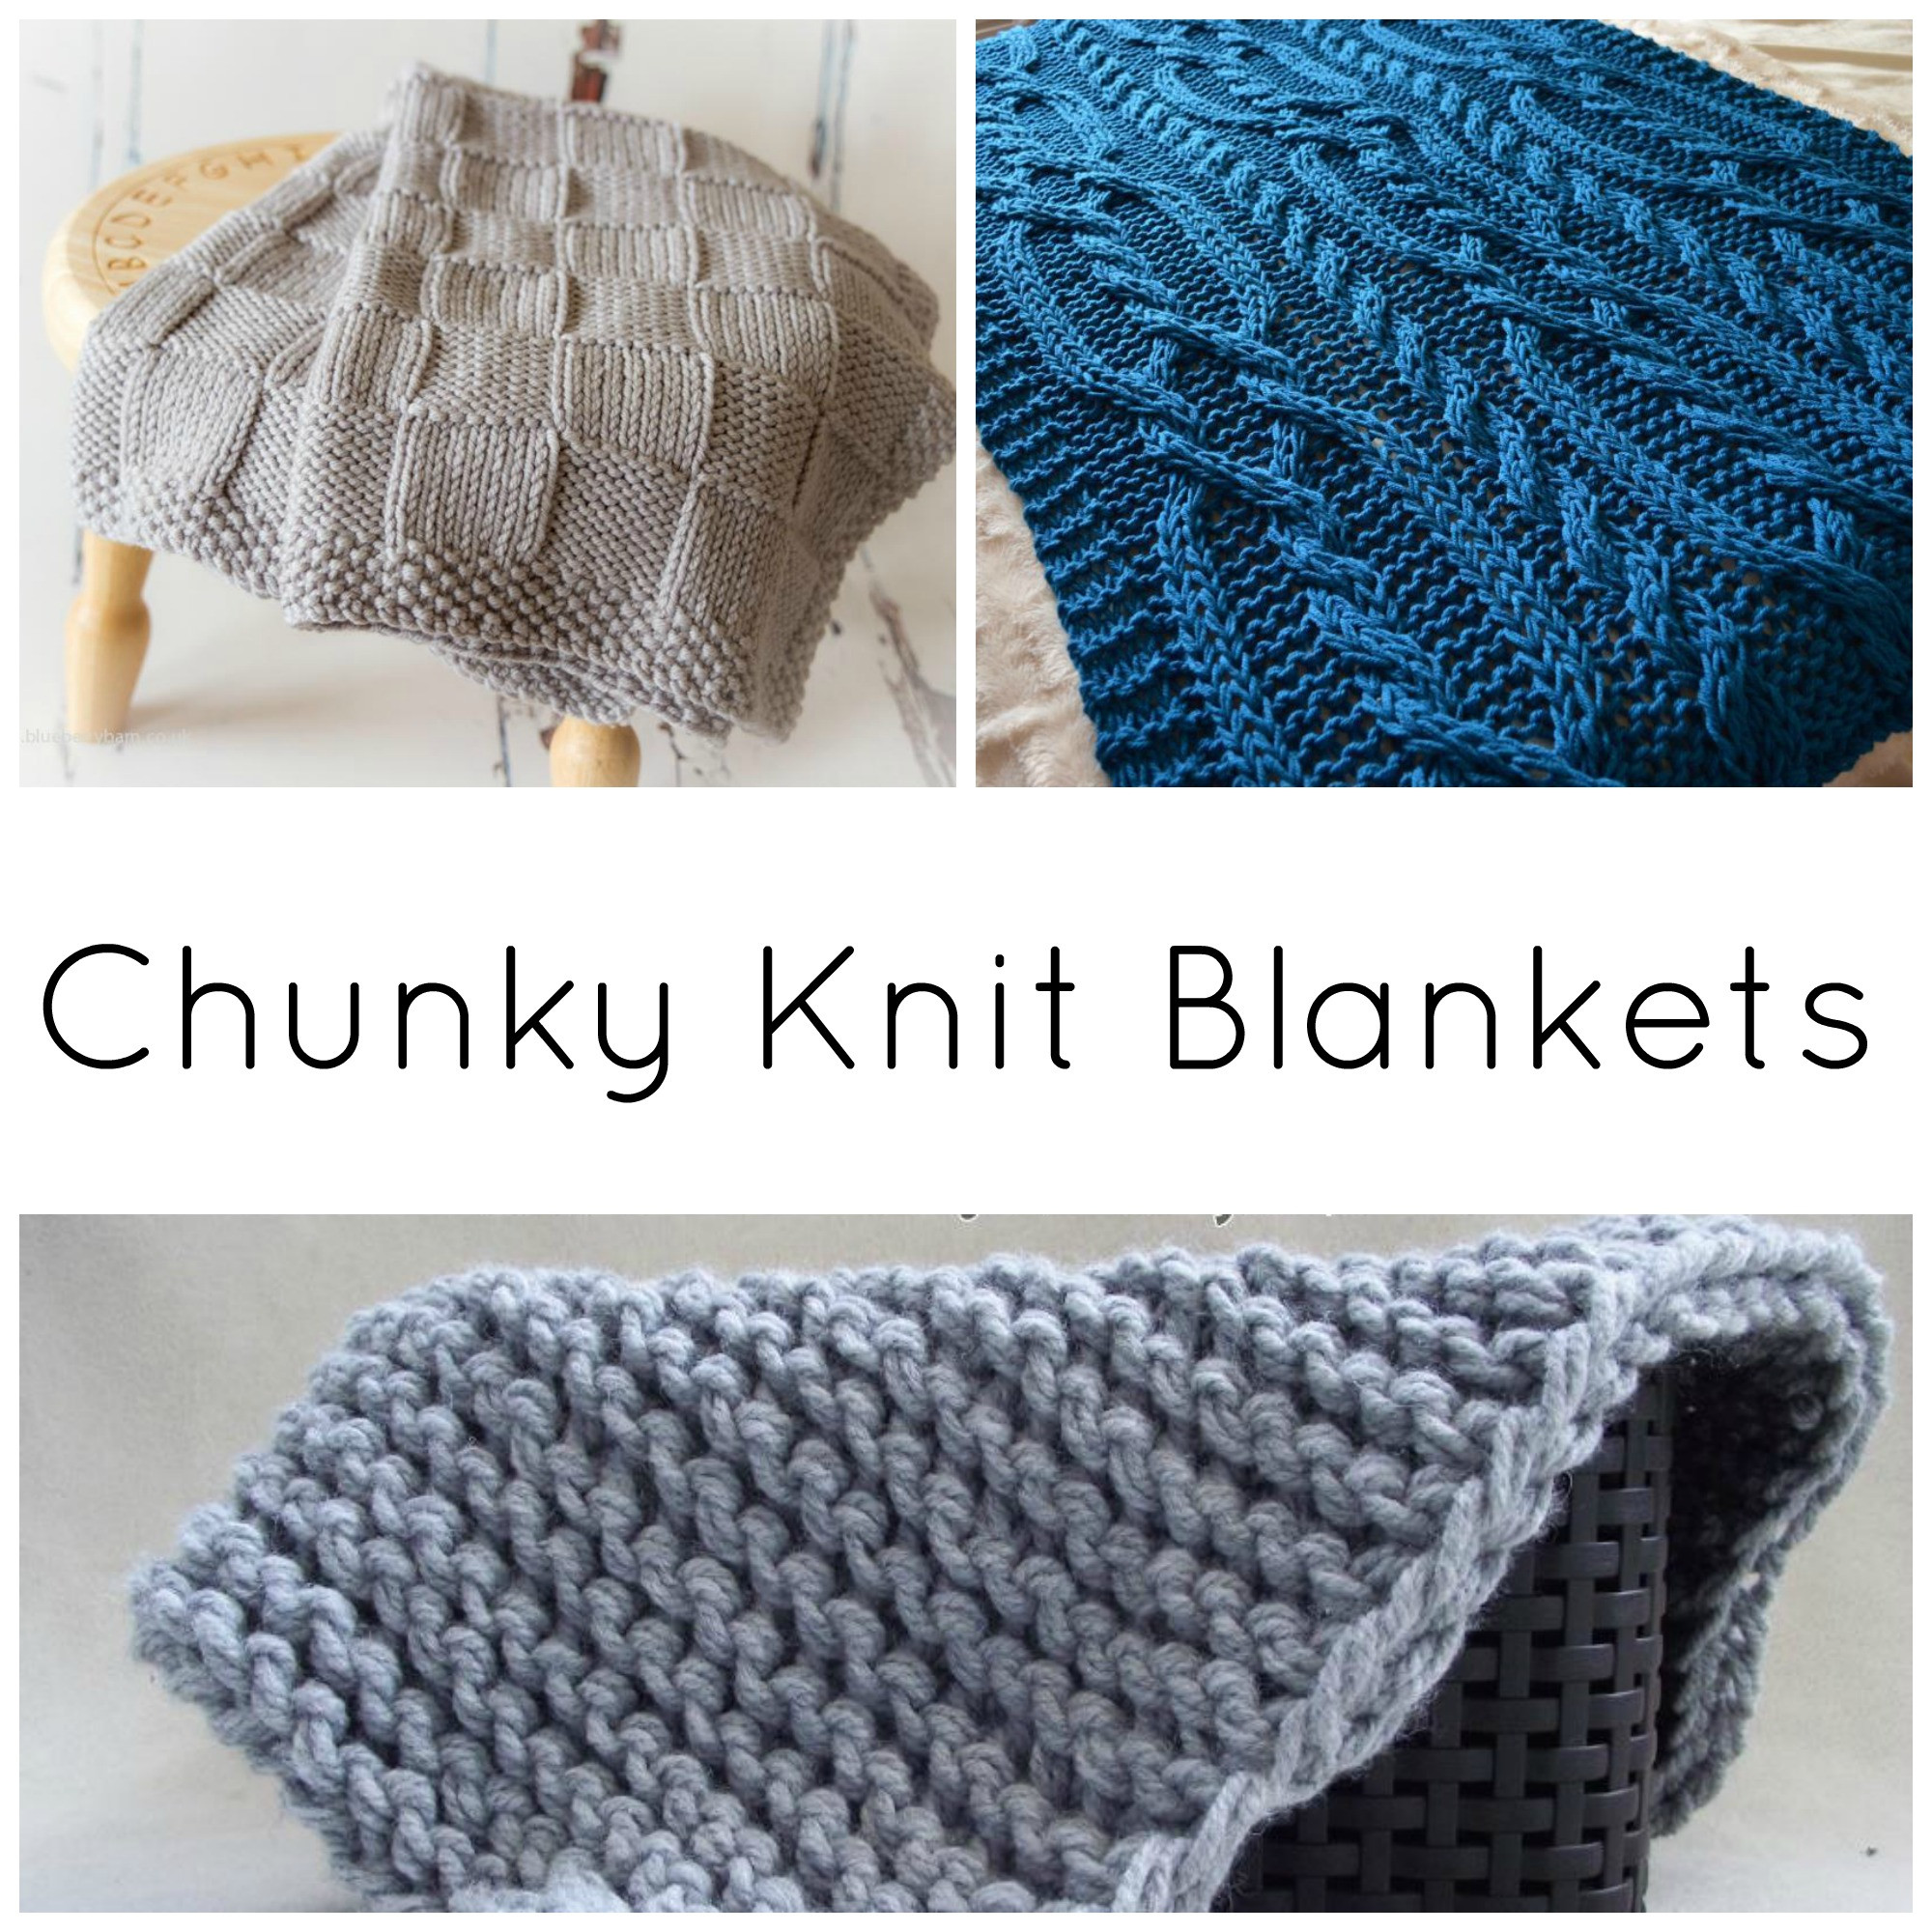 Chunky Knitting Patterns Best Of Free Baby Blanket Knitting Patterns Chunky Yarn Crochet Of Incredible 44 Pics Chunky Knitting Patterns